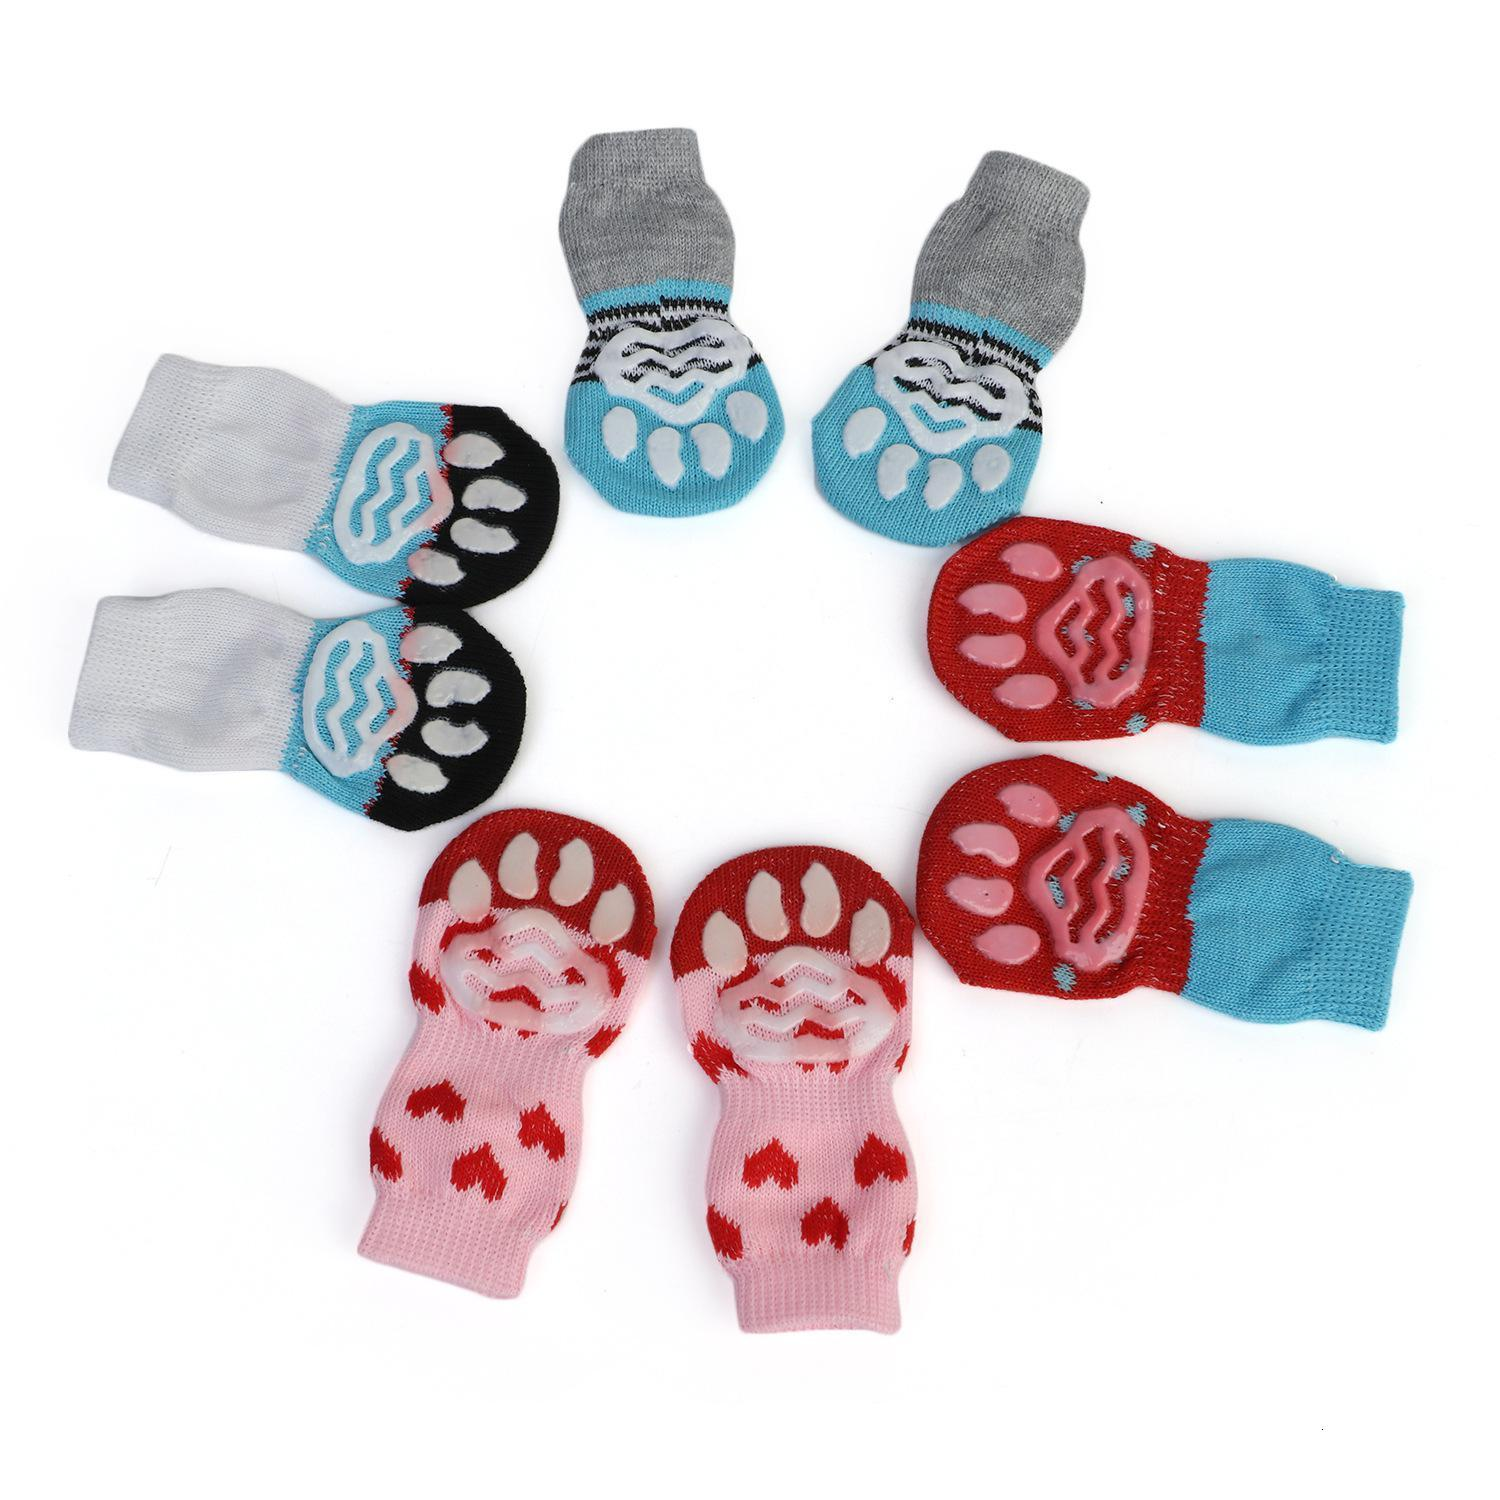 4pcs/Set Cute Puppy Dog Knit Socks Small Dogs Cotton Anti-Slip Cat Shoes For Autumn Winter Indoor Wear Slip On Paw Protector FWA3023